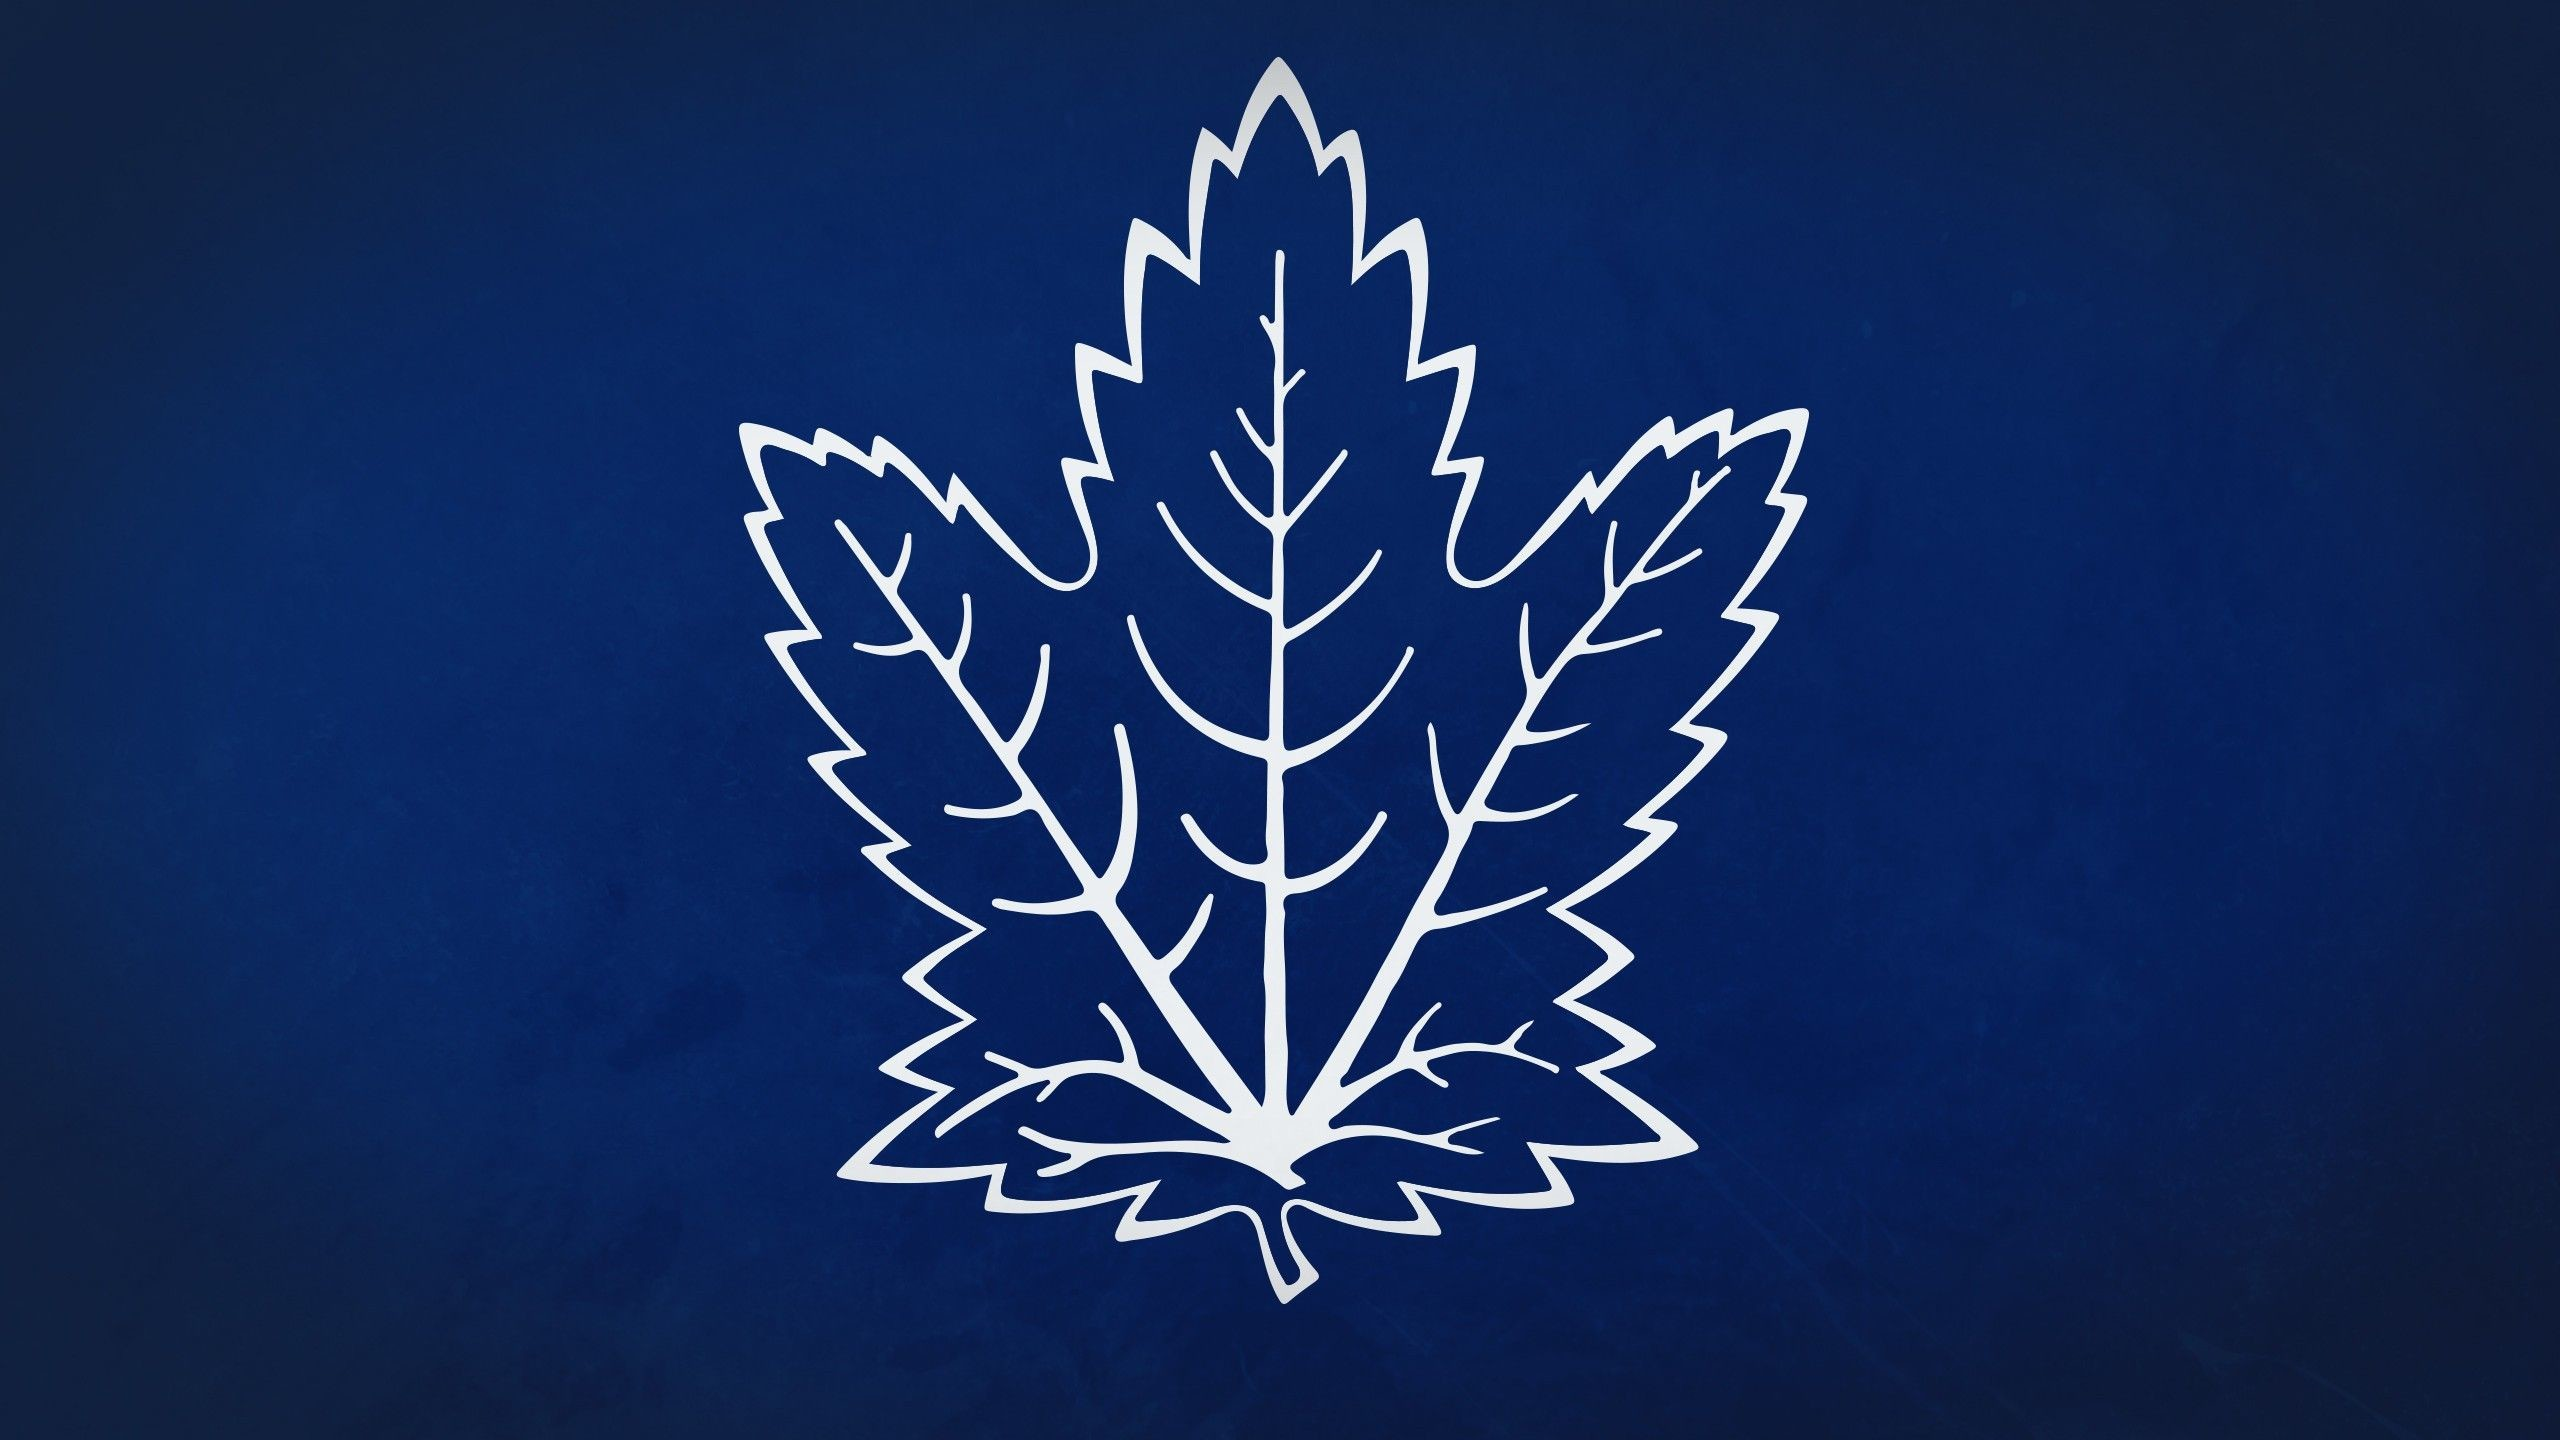 Toronto Maple Leafs Wallpapers | Toronto Maple Leafs Backgrounds